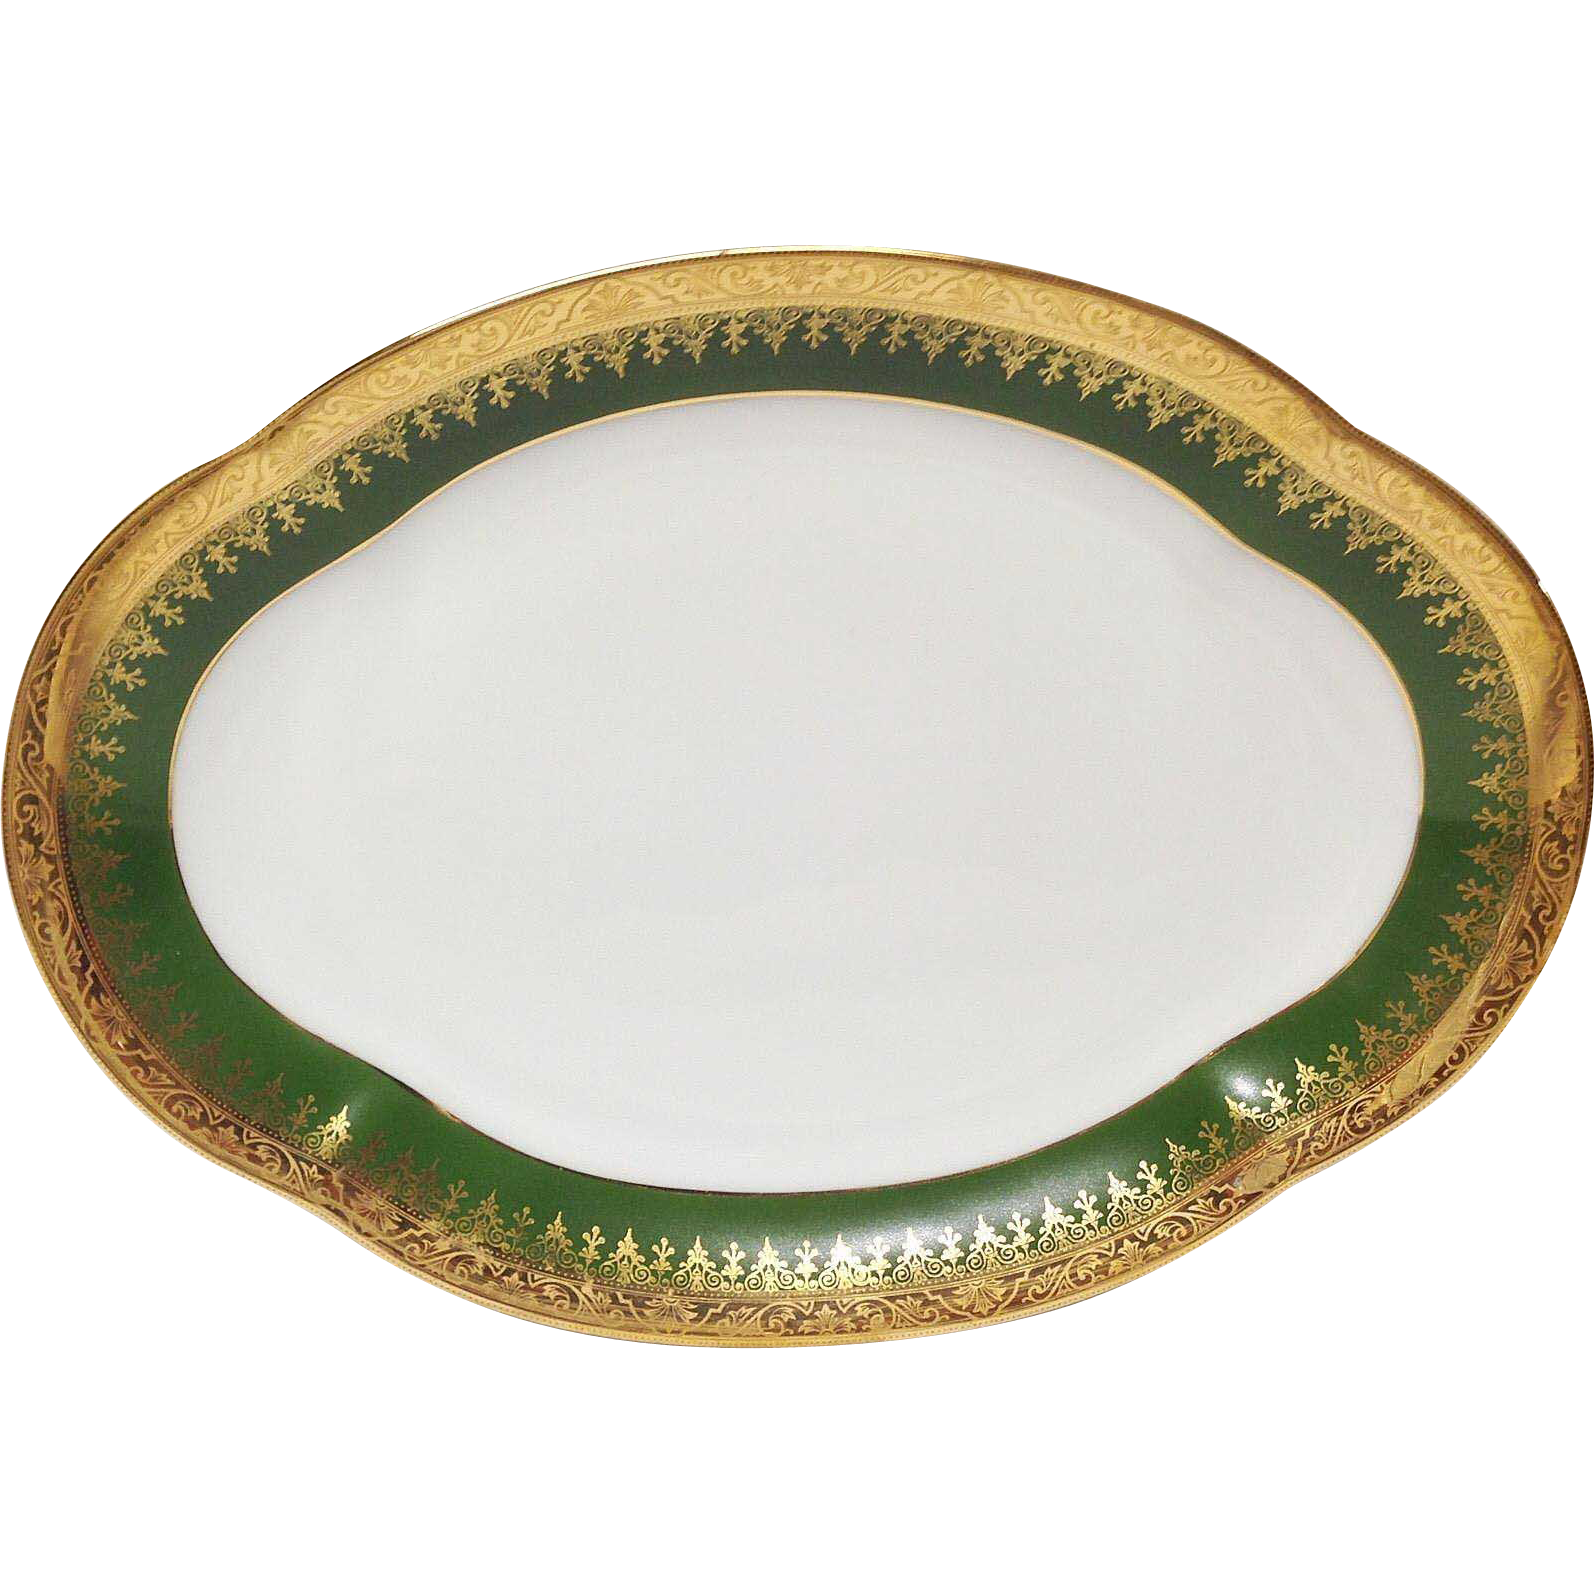 Charles Field Haviland Green & Gold Encrusted Oval Vegetable Bowl